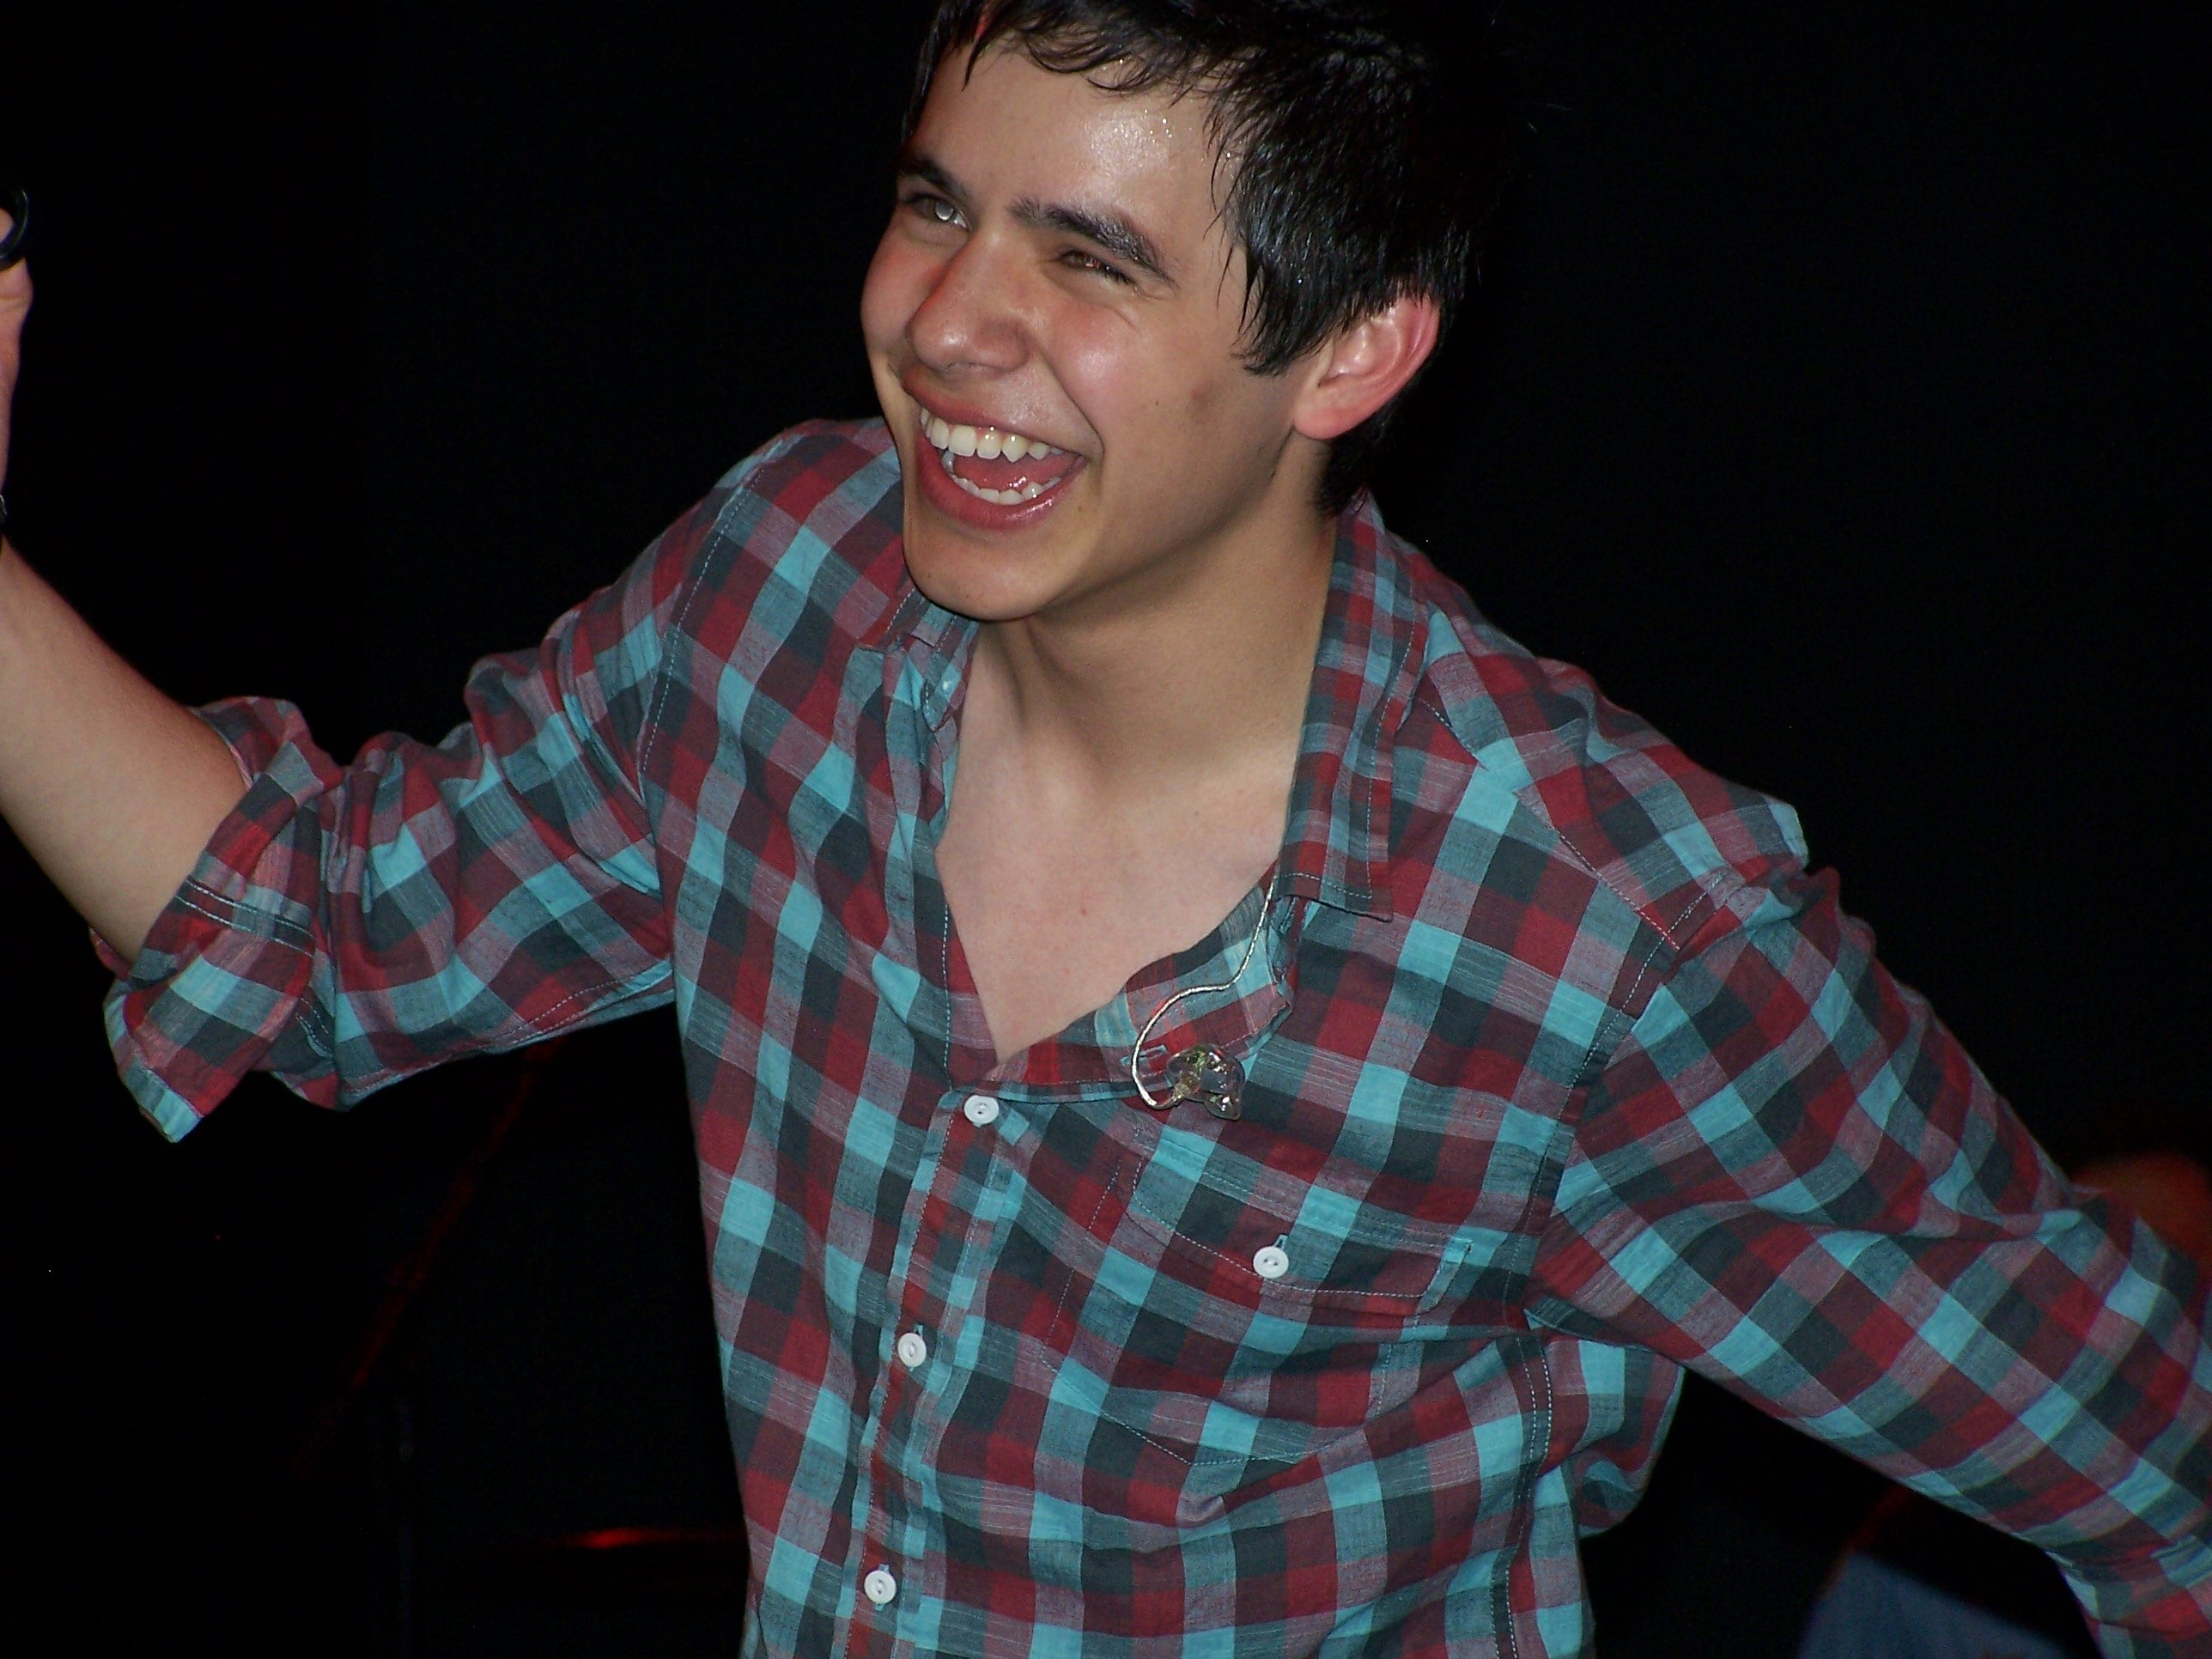 David Archuleta performs in Pittsburg in one of his solo shows during the Demi / David tour